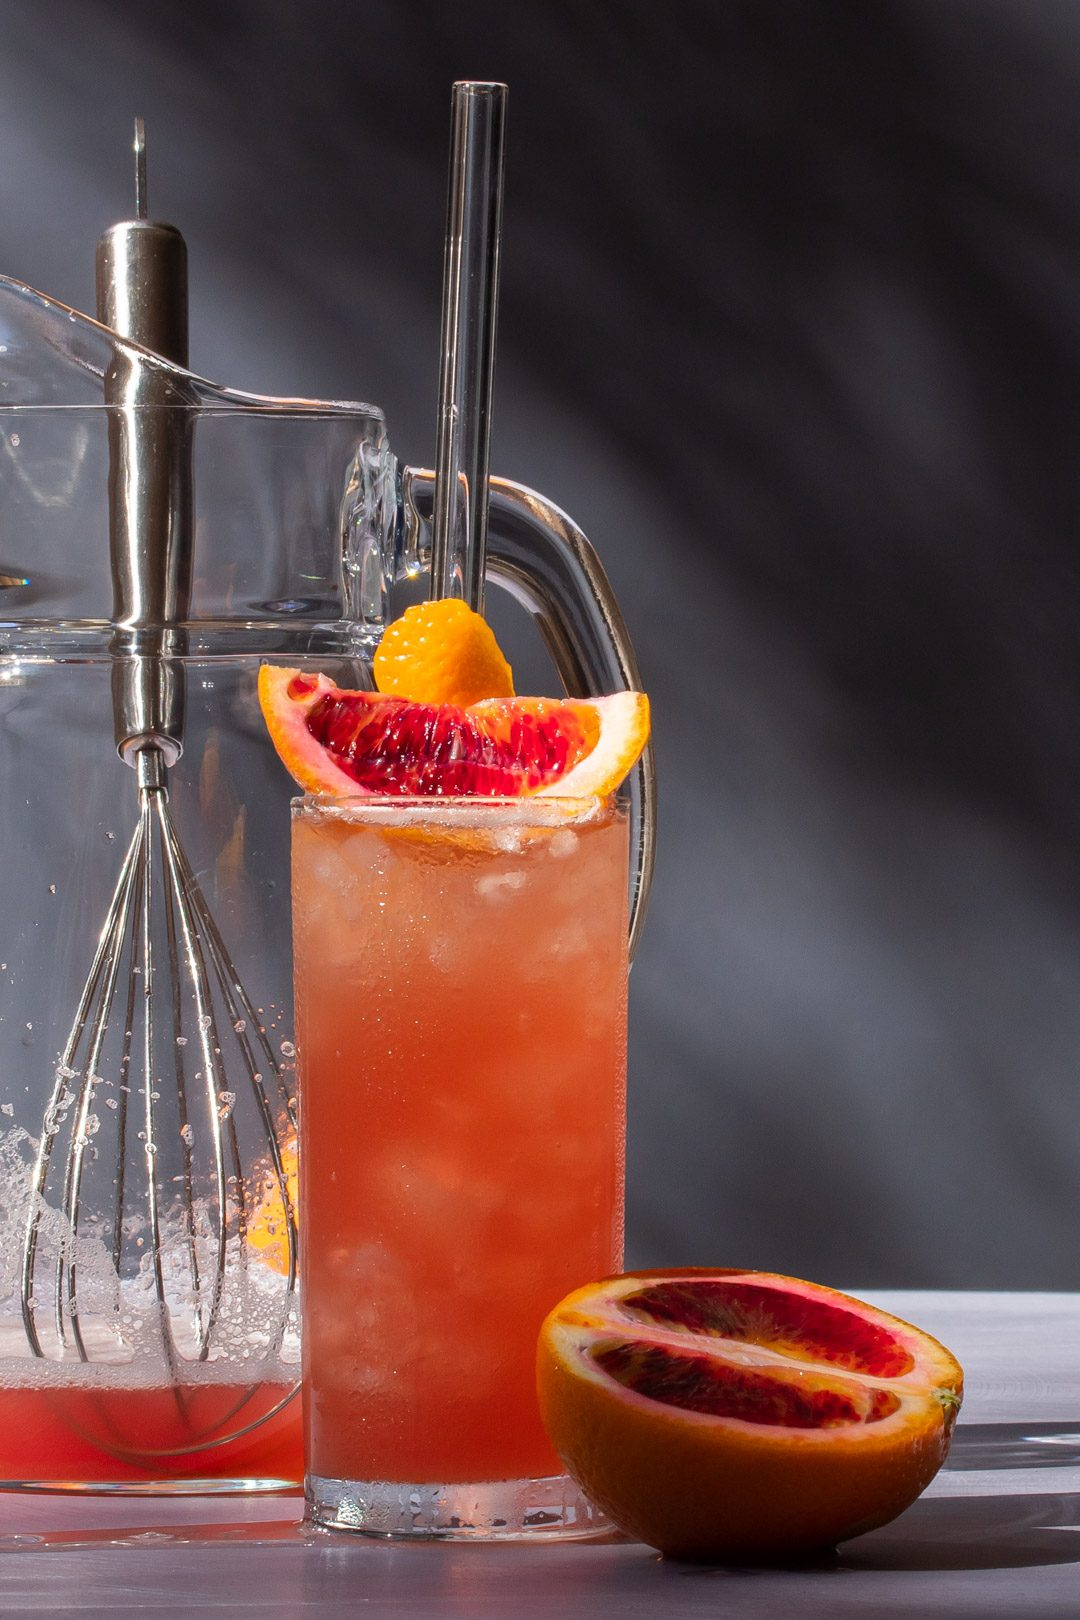 making improved blood orangeade with jug and whisk